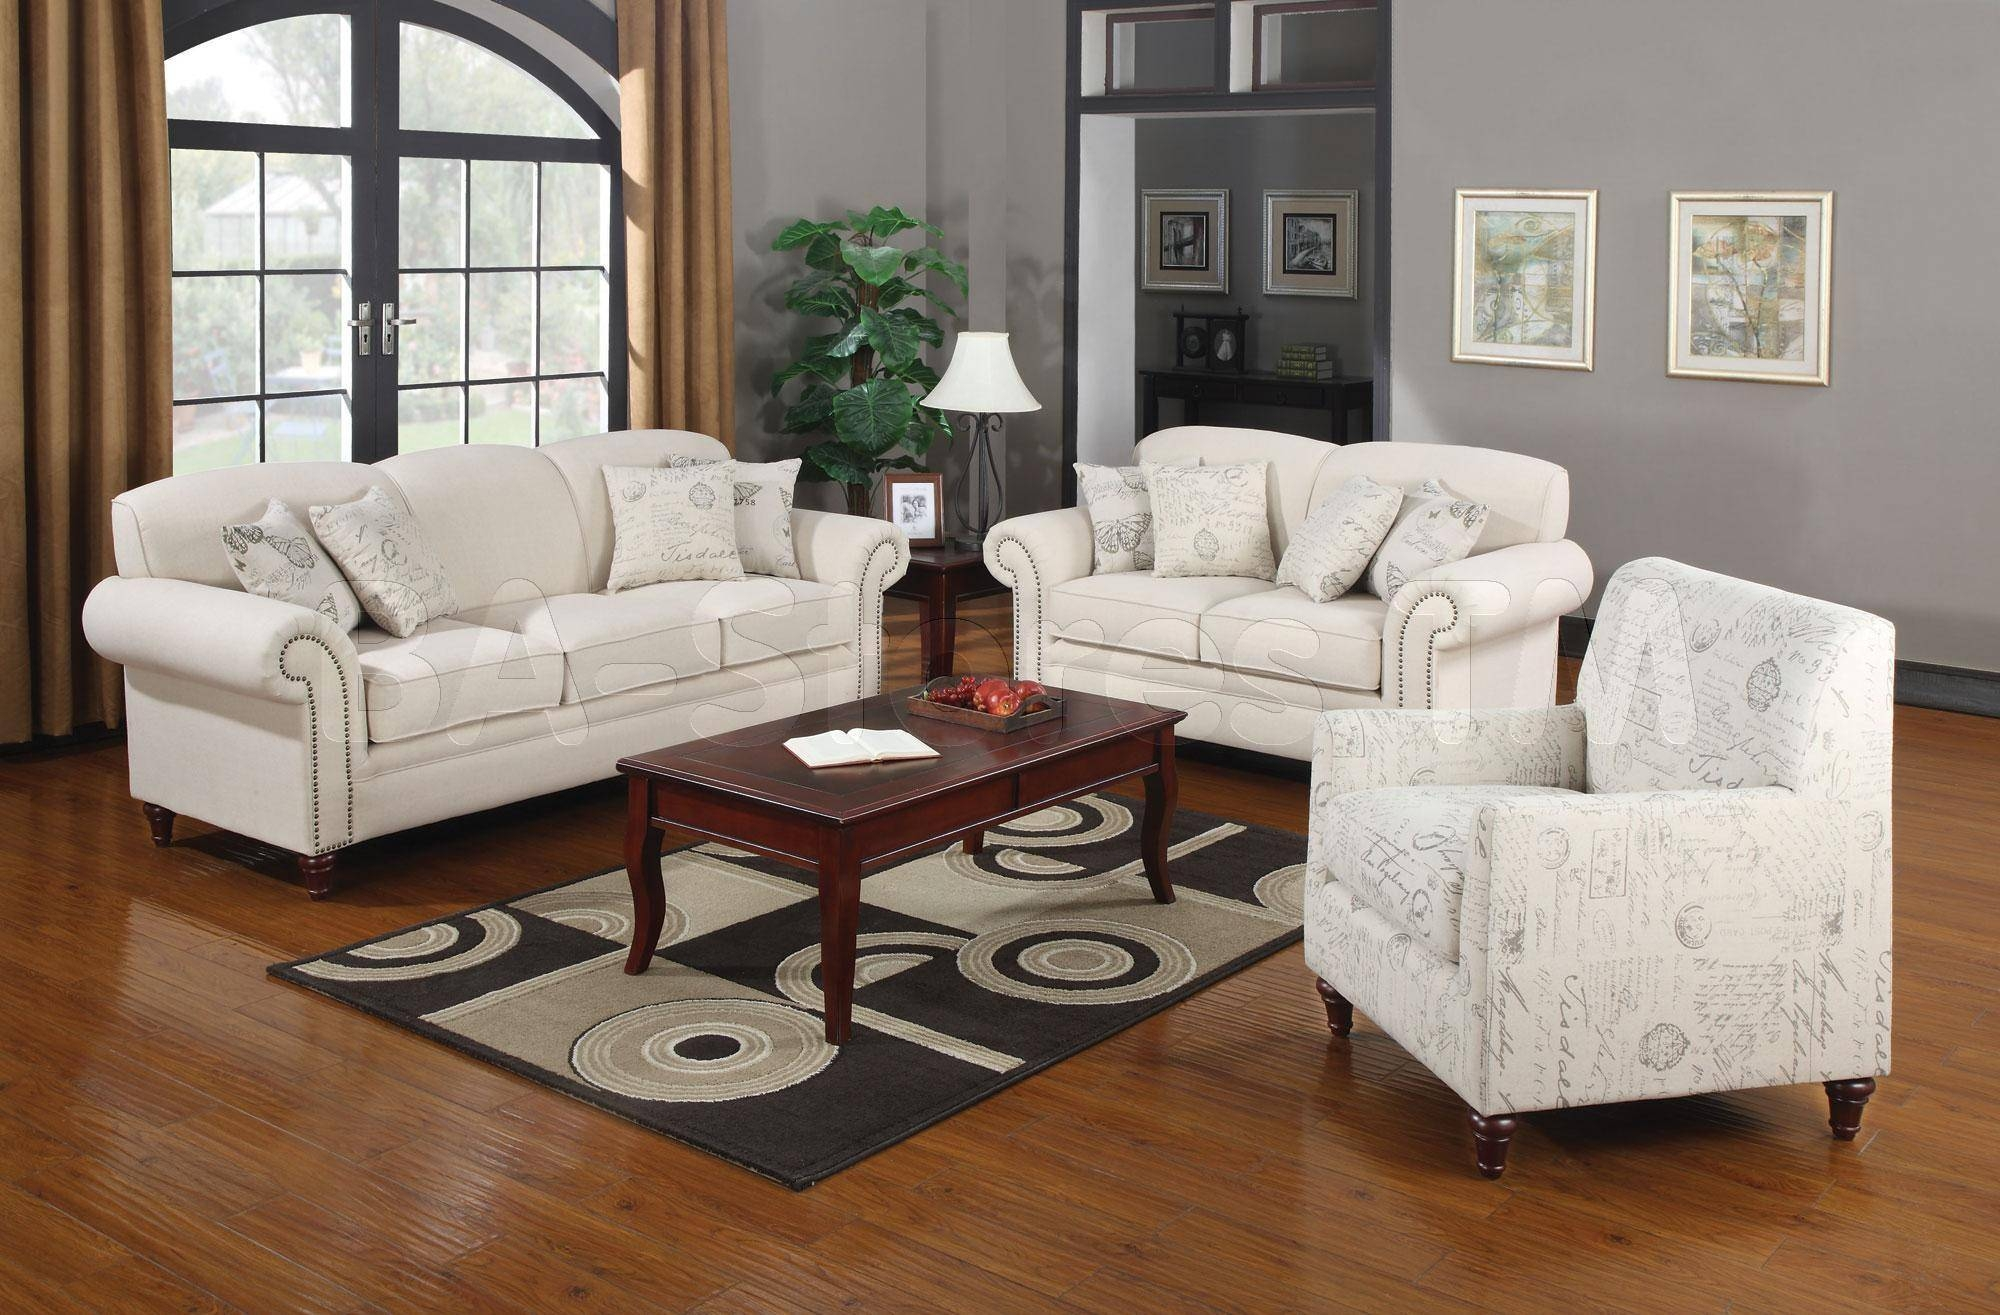 15 Best Collection of Living Room Sofa and Chair Sets